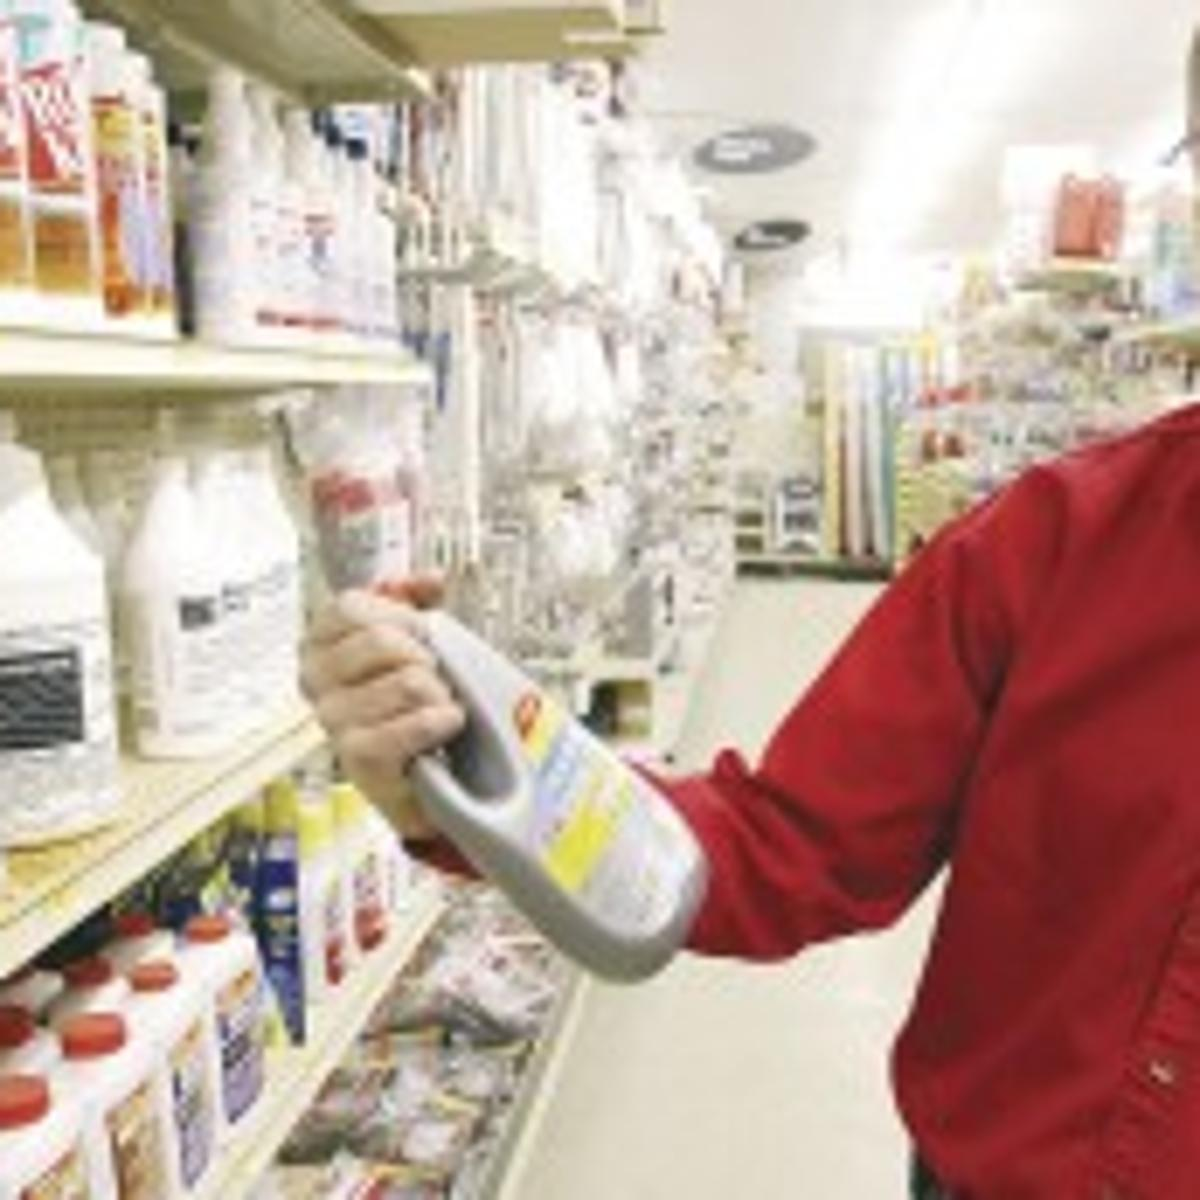 New method for making meth has retailers on alert | Local News